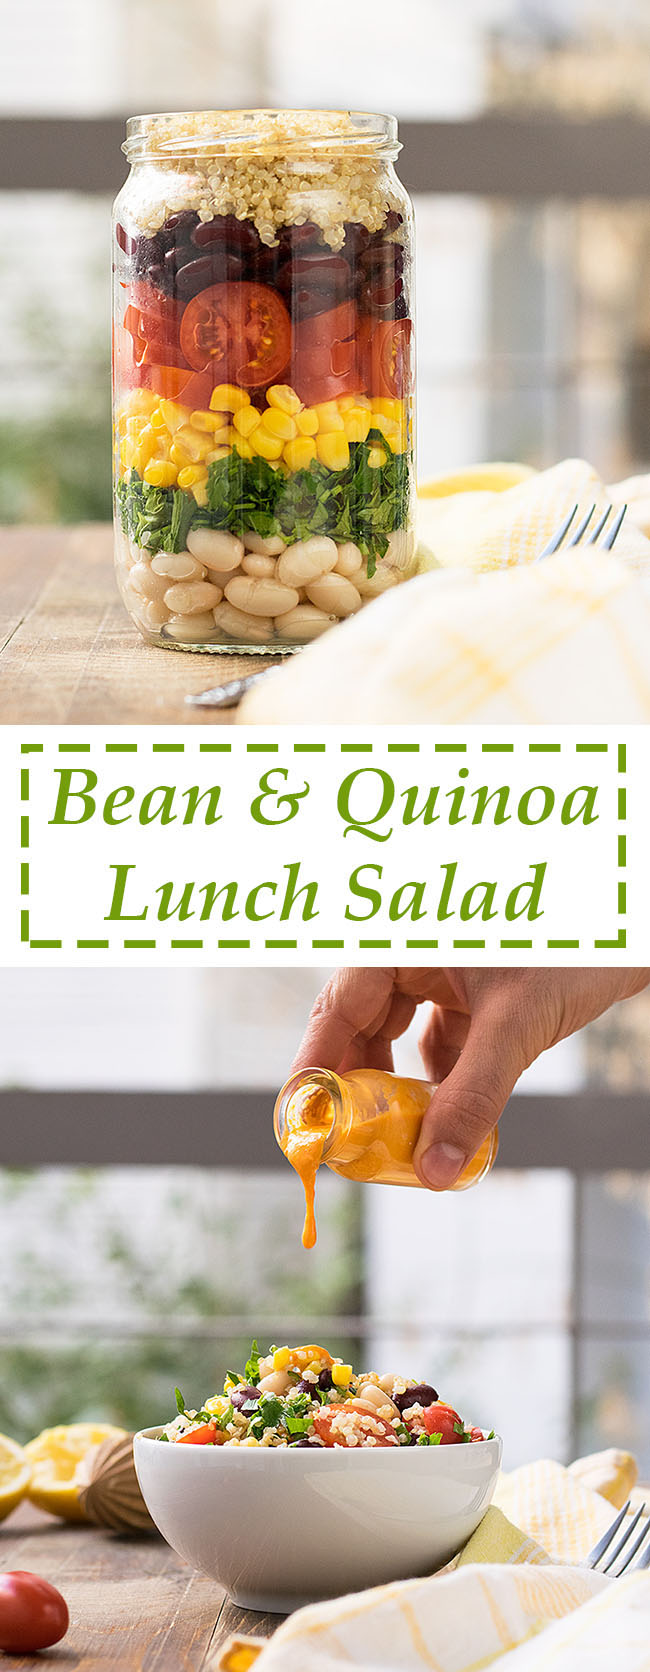 Quinoa and bean lunch salad 4